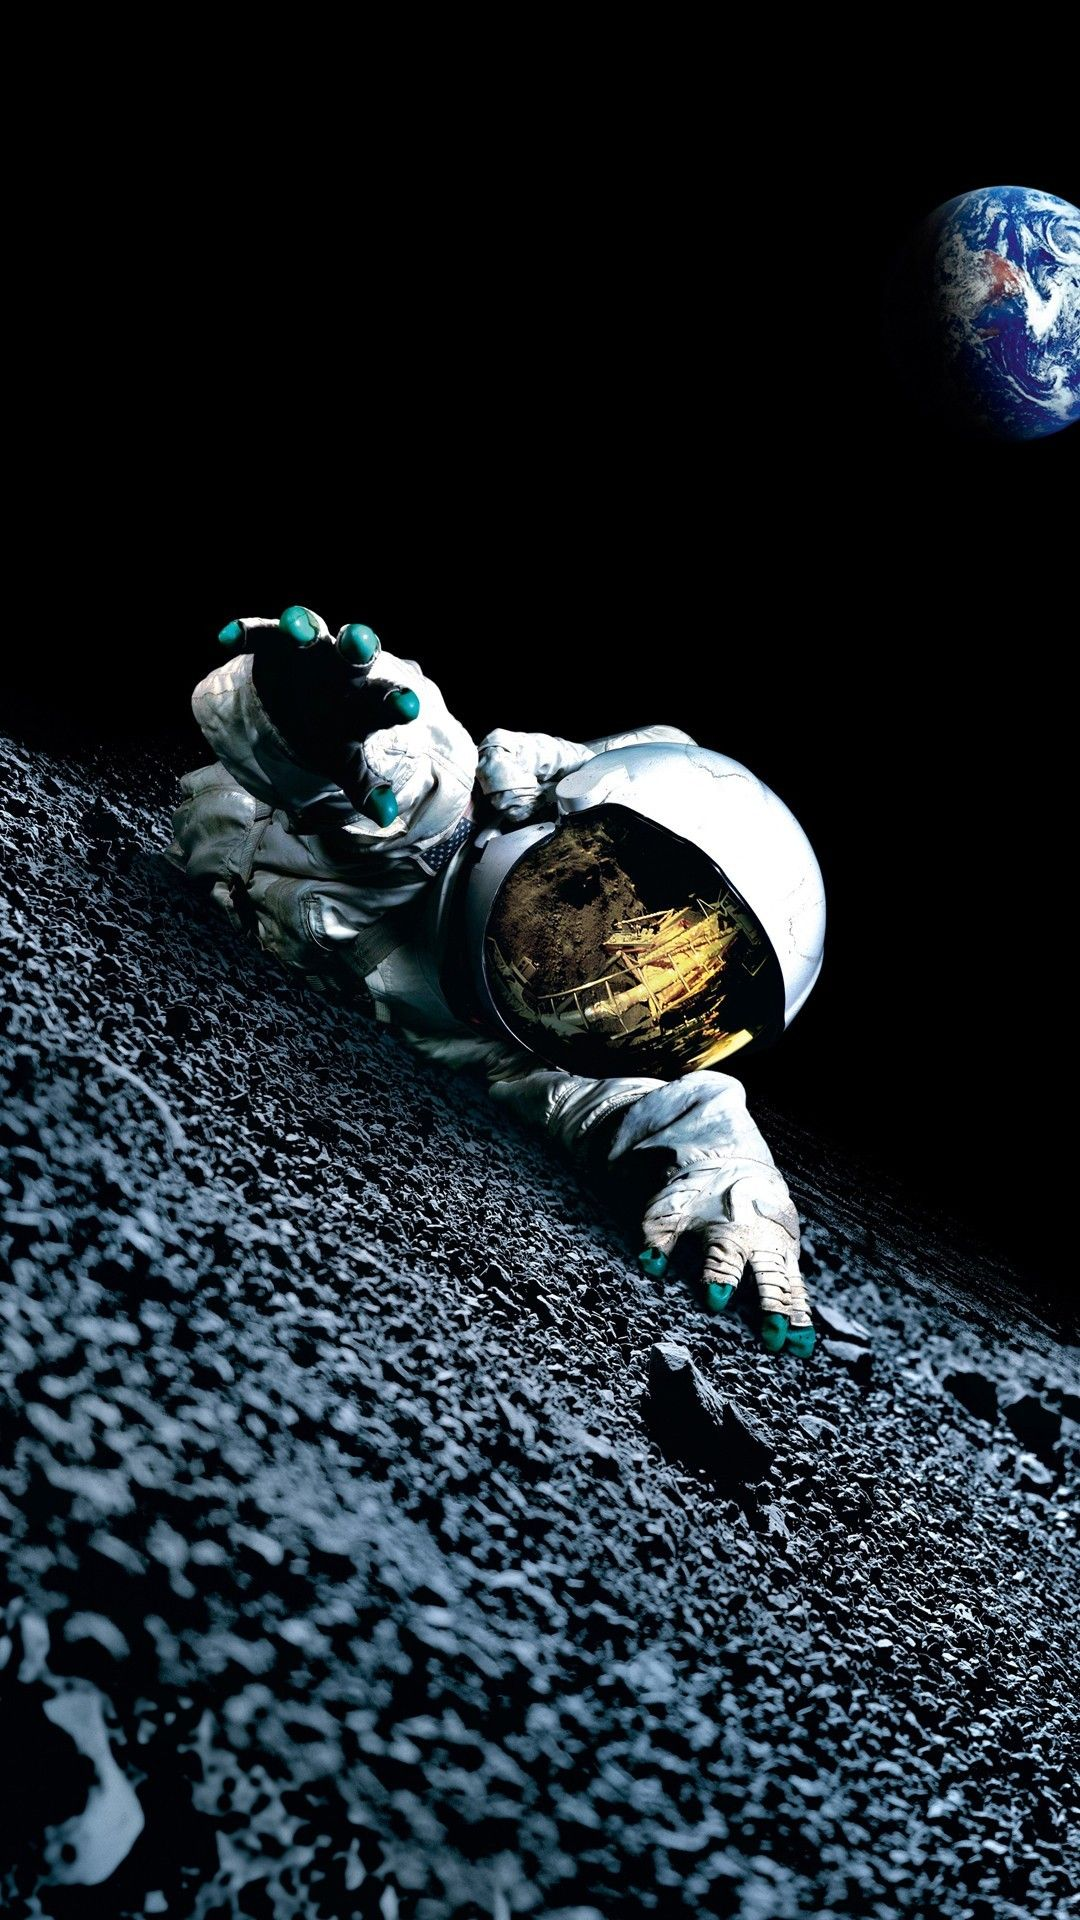 Apollo 18 htc one wallpaper in 2019 wallpaper space space backgrounds astronaut - 18 by 9 wallpaper ...